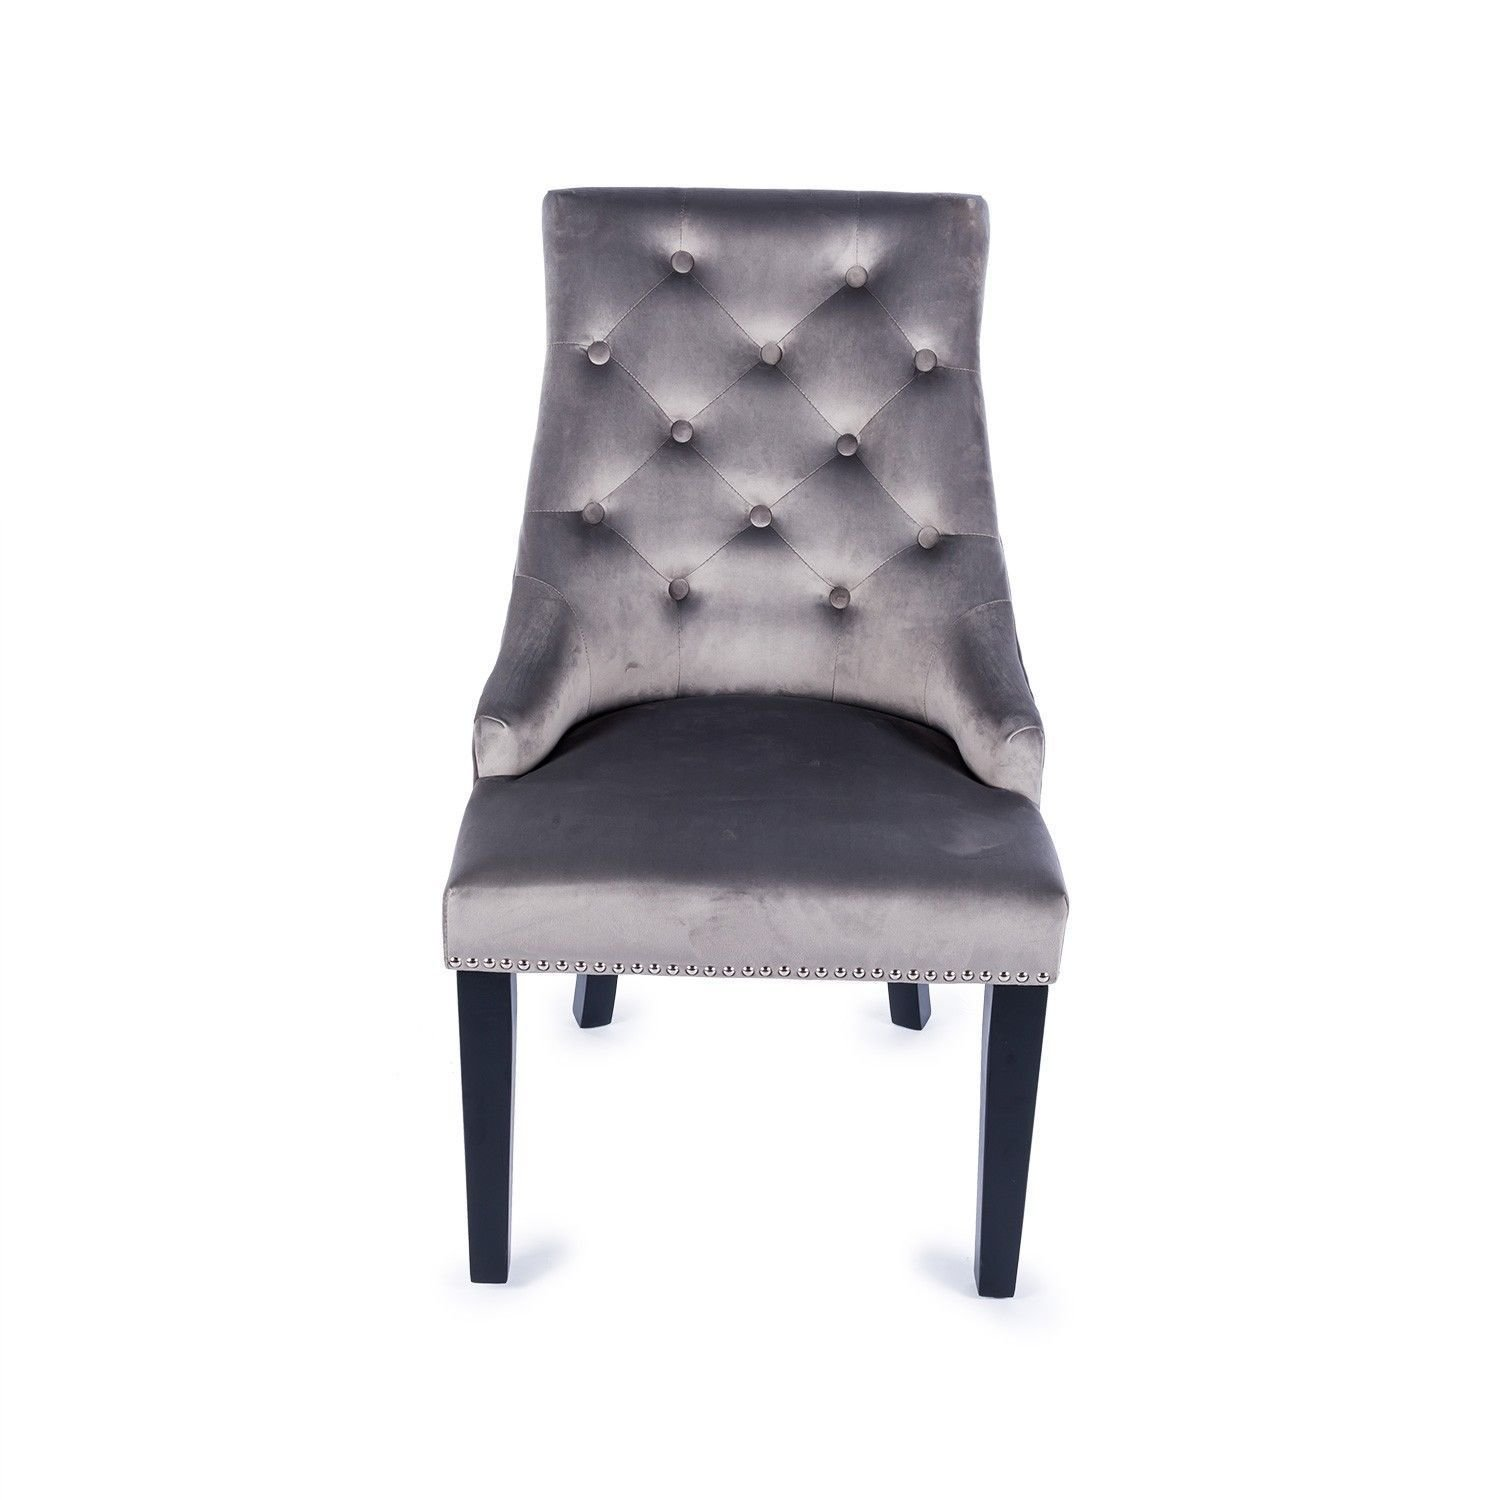 Best Light Grey Velvet Studded Dining Occasional Bedroom Chair With Knocker Ringpull Tcdh Lk K1 38 With Pictures